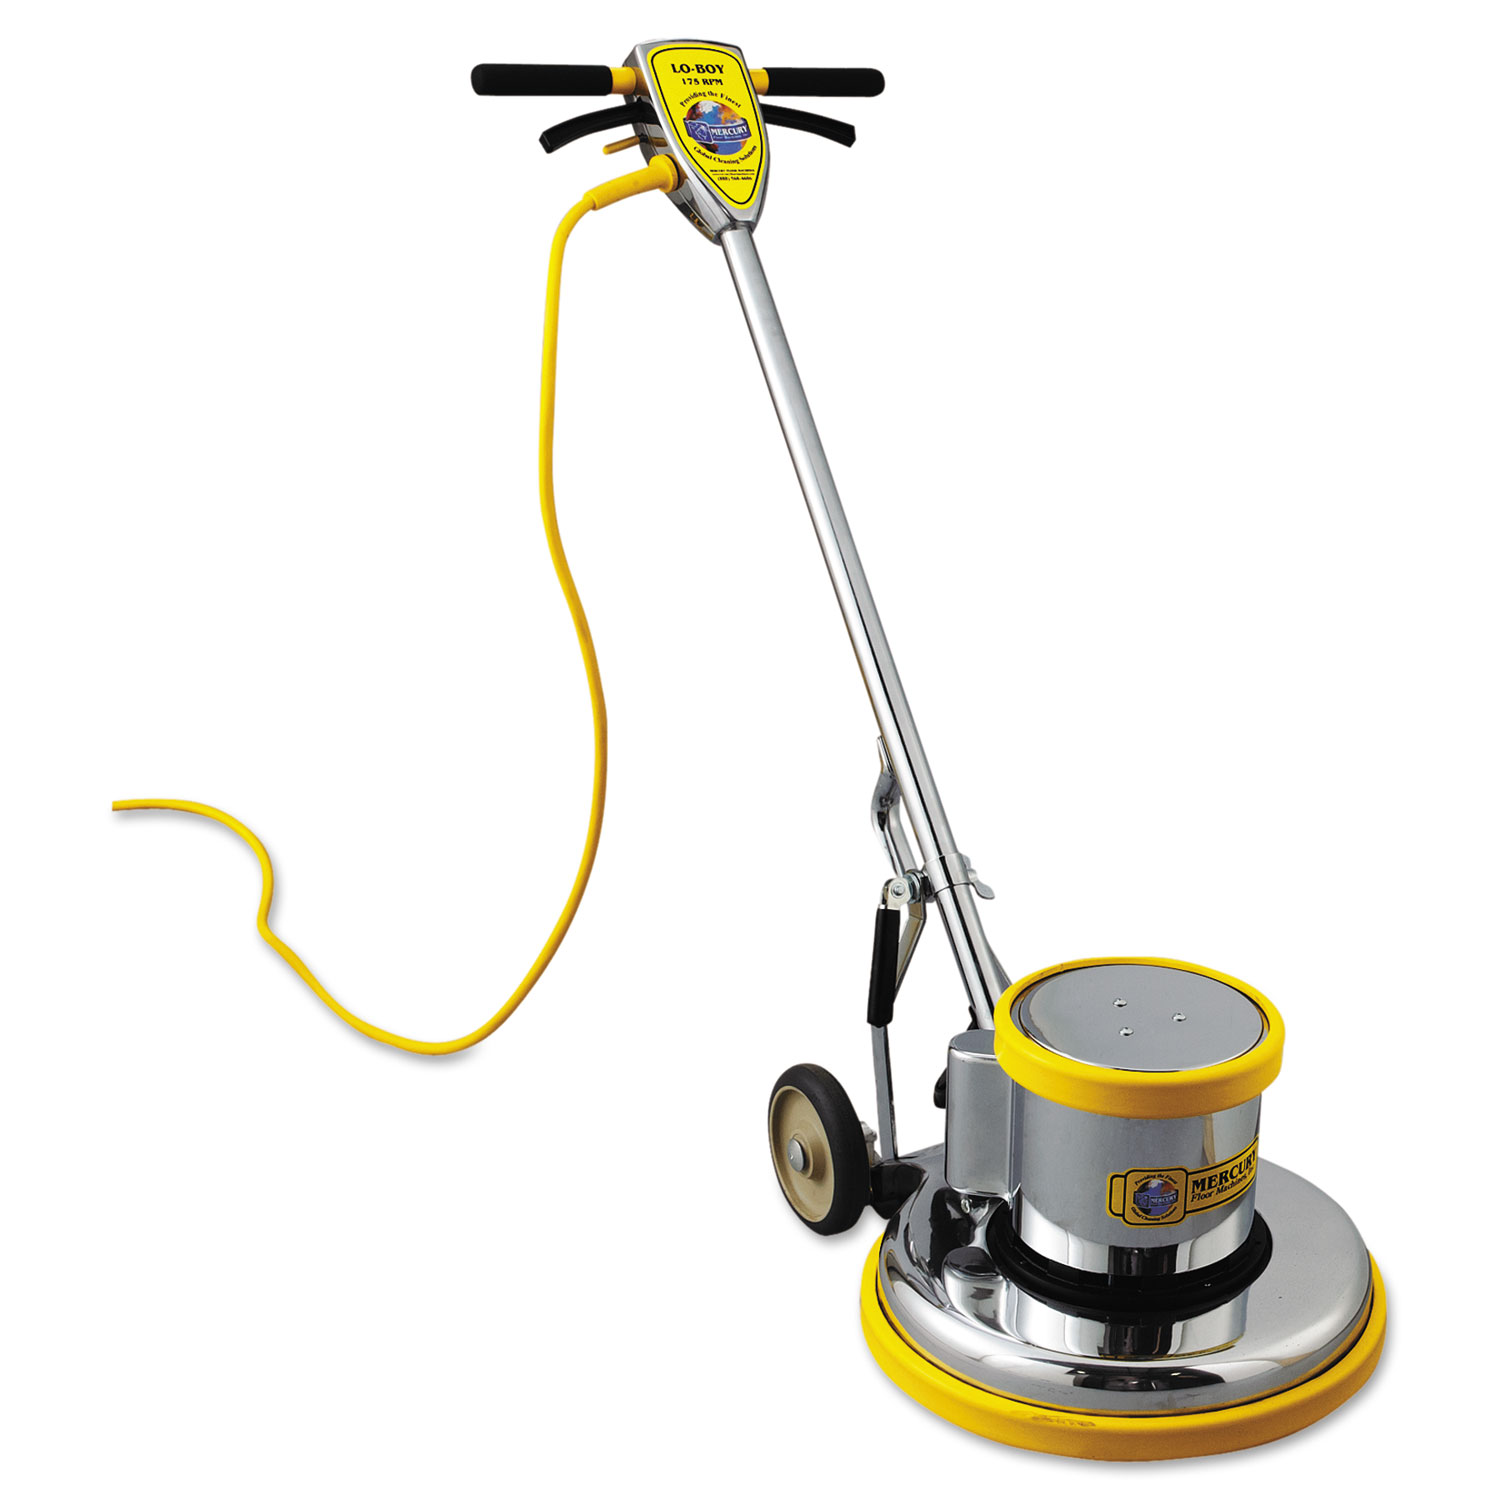 PRO-175-17 Floor Machine, 1 5 HP, 175 RPM, 16